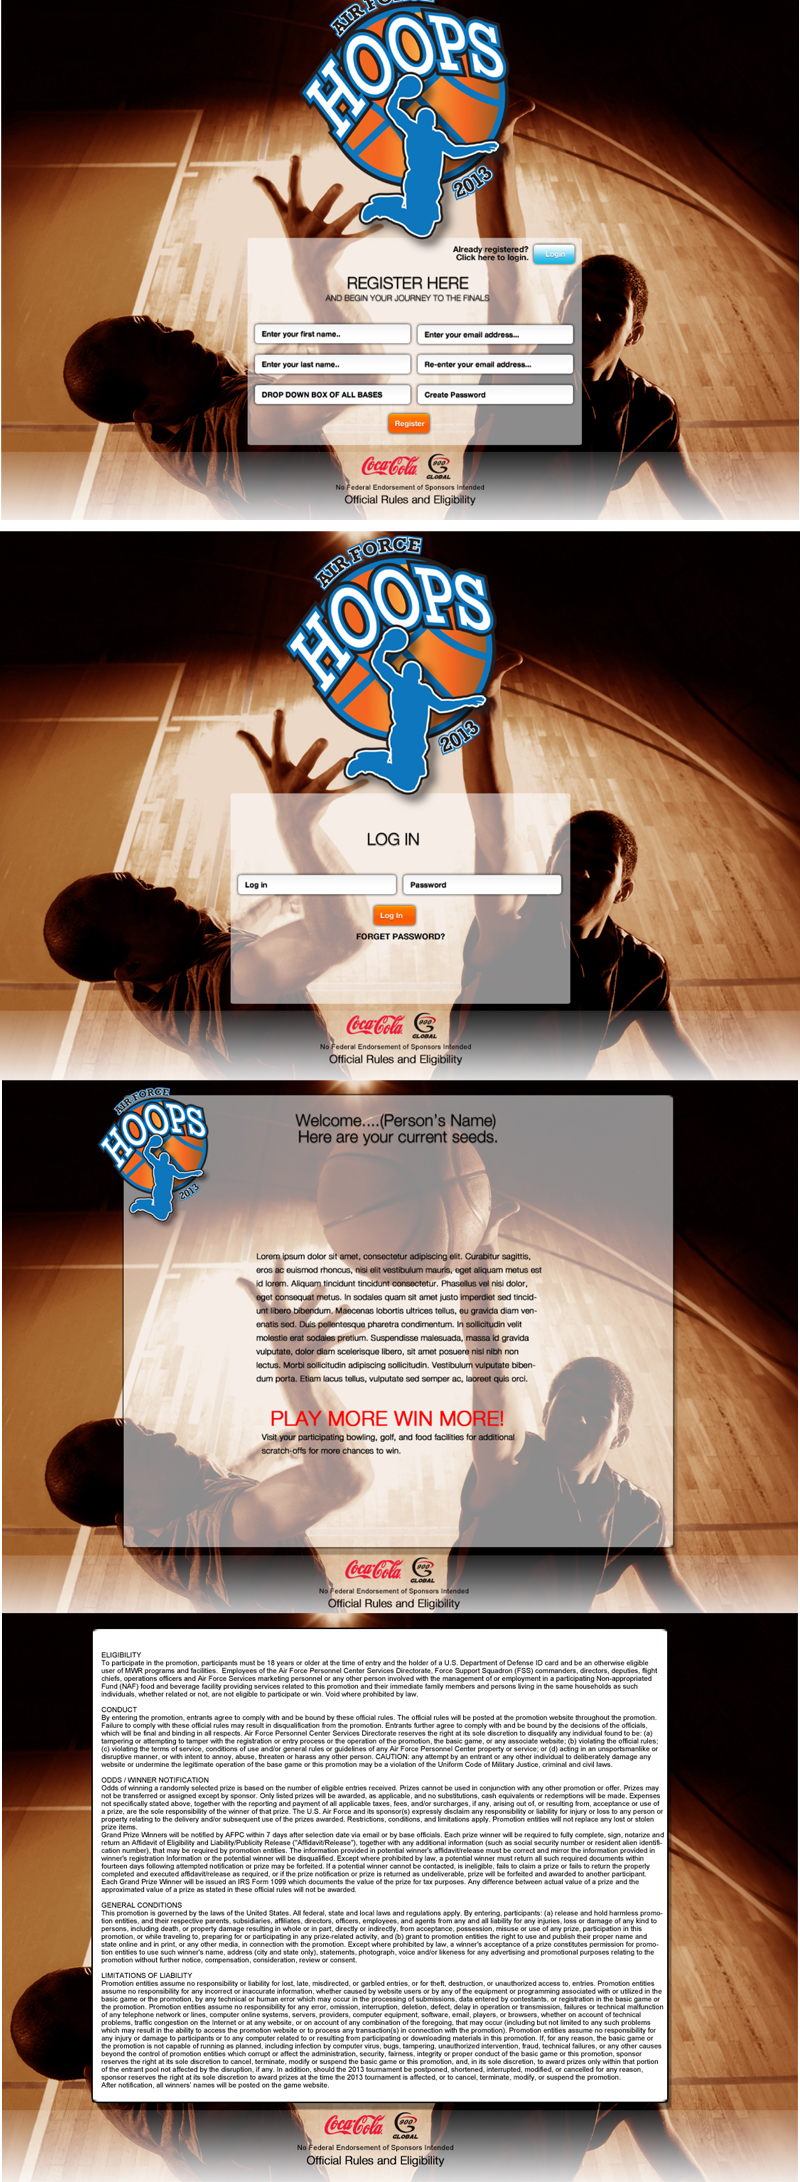 AlleyHoops-Poster-CONCEPT_Web